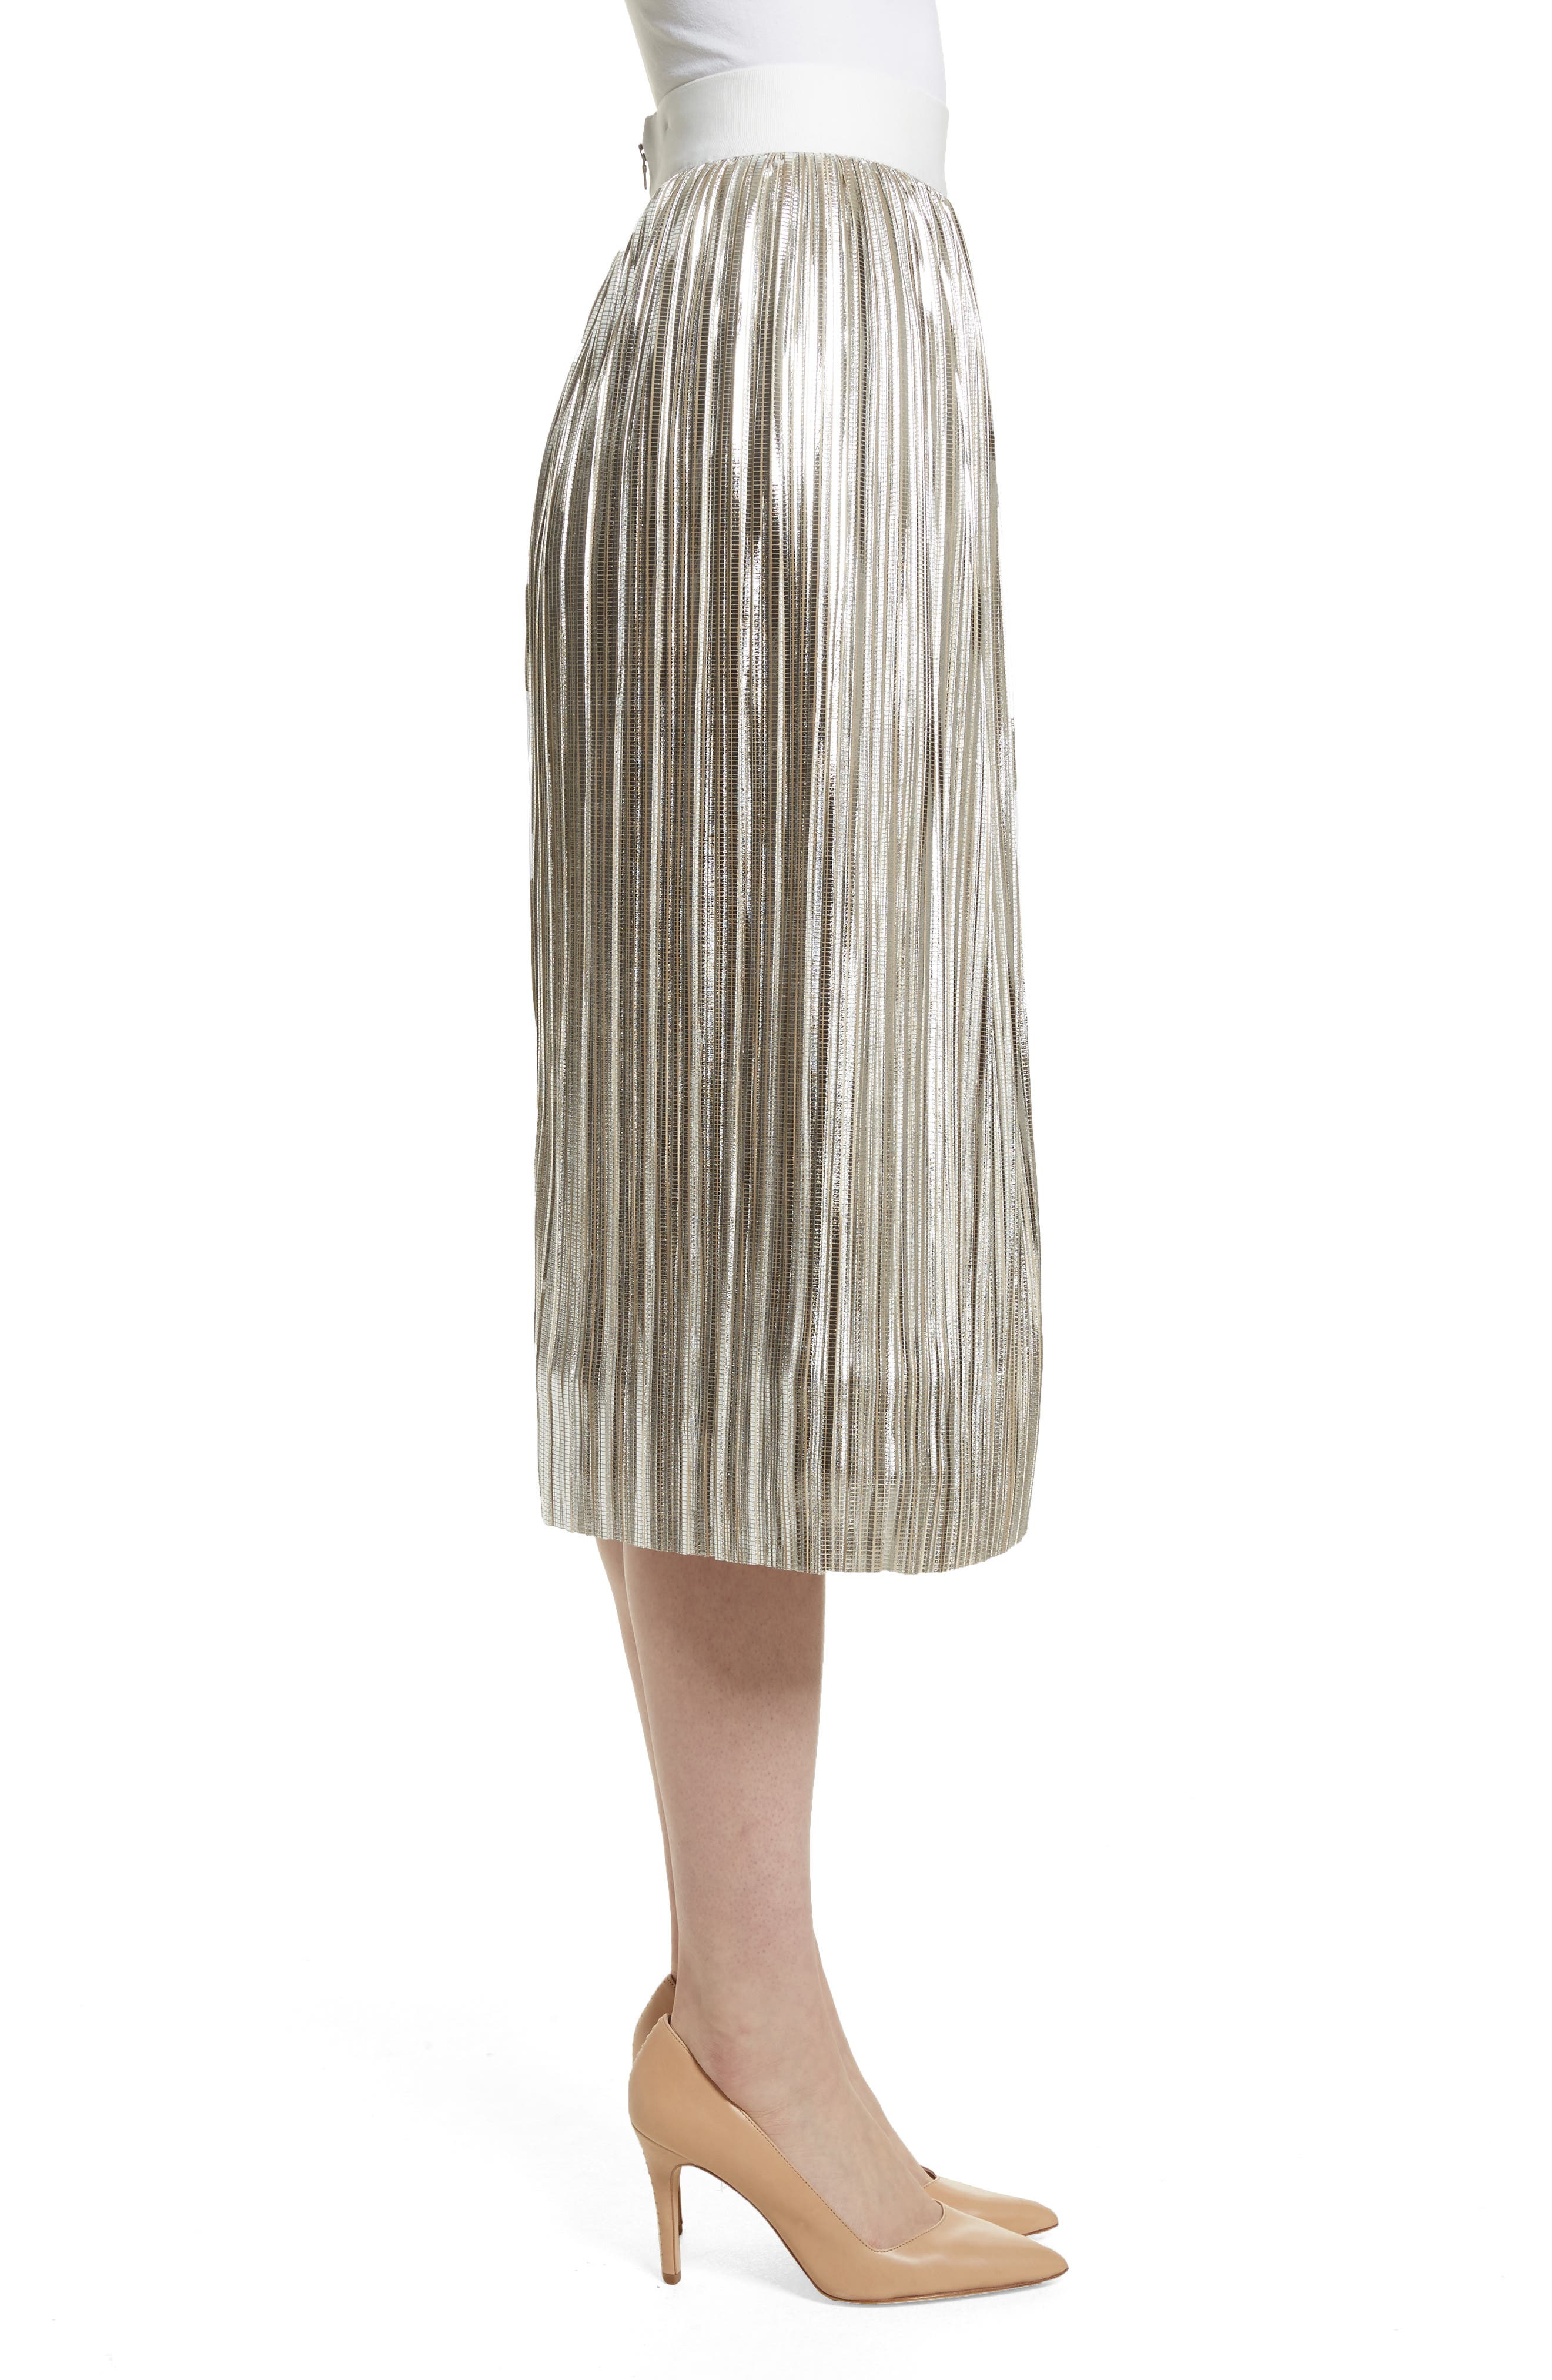 Mikaela Pleat Metallic Skirt,                             Alternate thumbnail 3, color,                             Silver Metallic